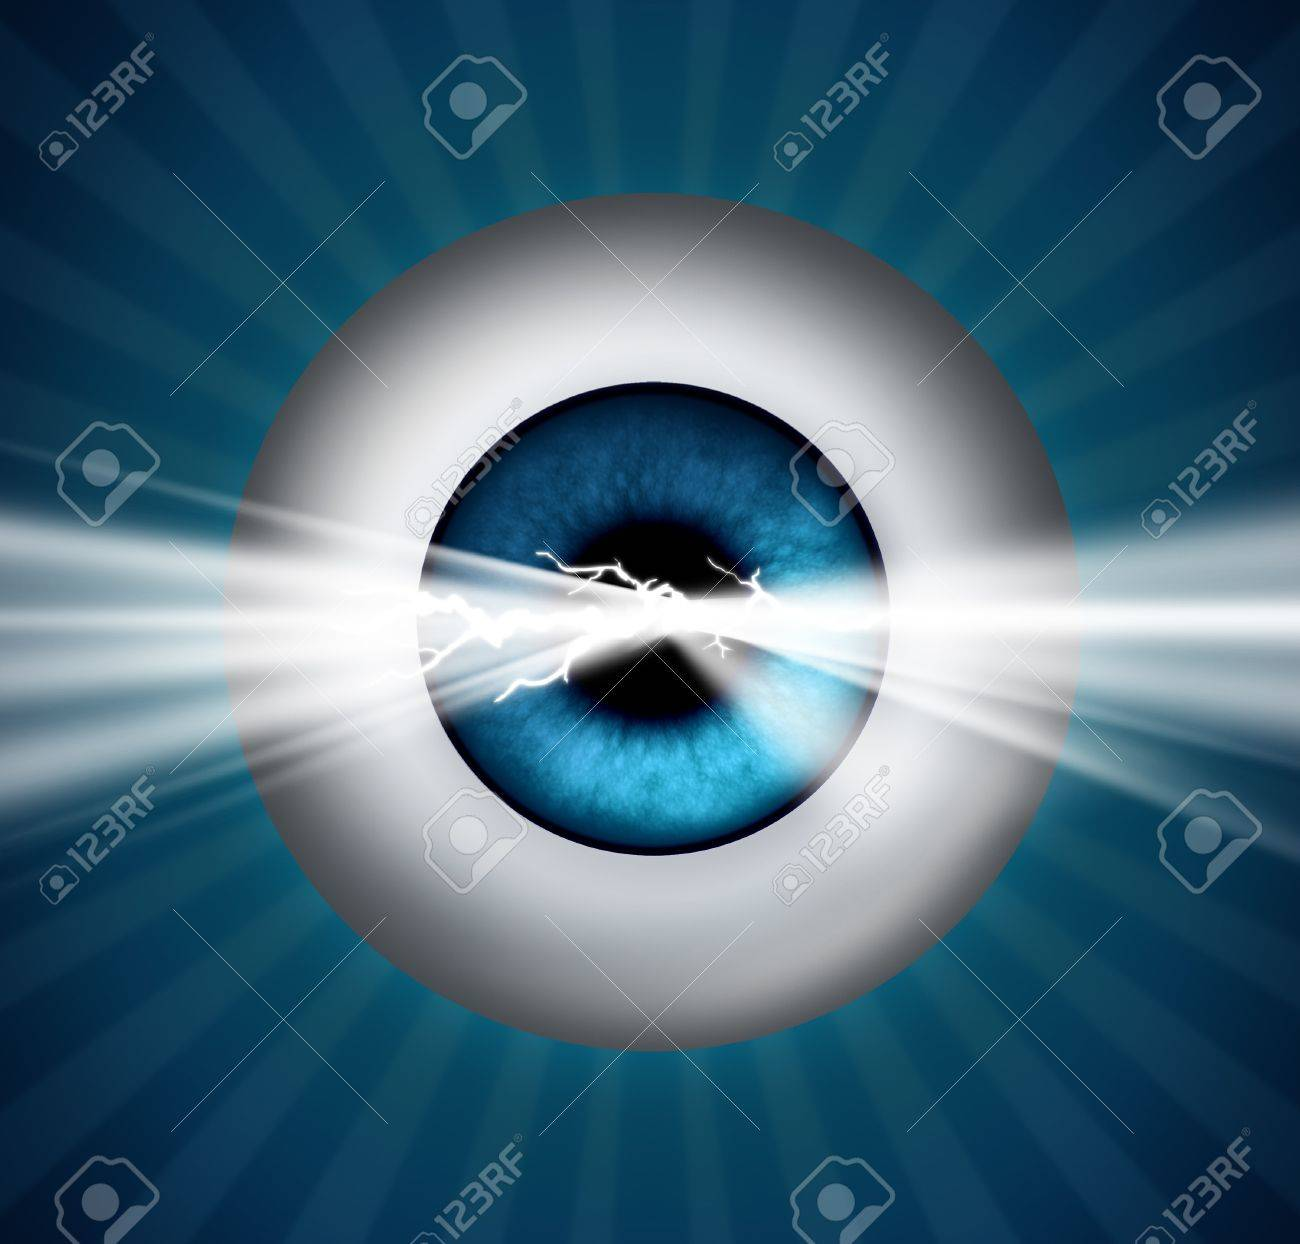 Visionary and foresight into the future and insight to creativity and innovation through education and business strategy with a human eye ball and a glowing light breaking out Stock Photo - 16689643